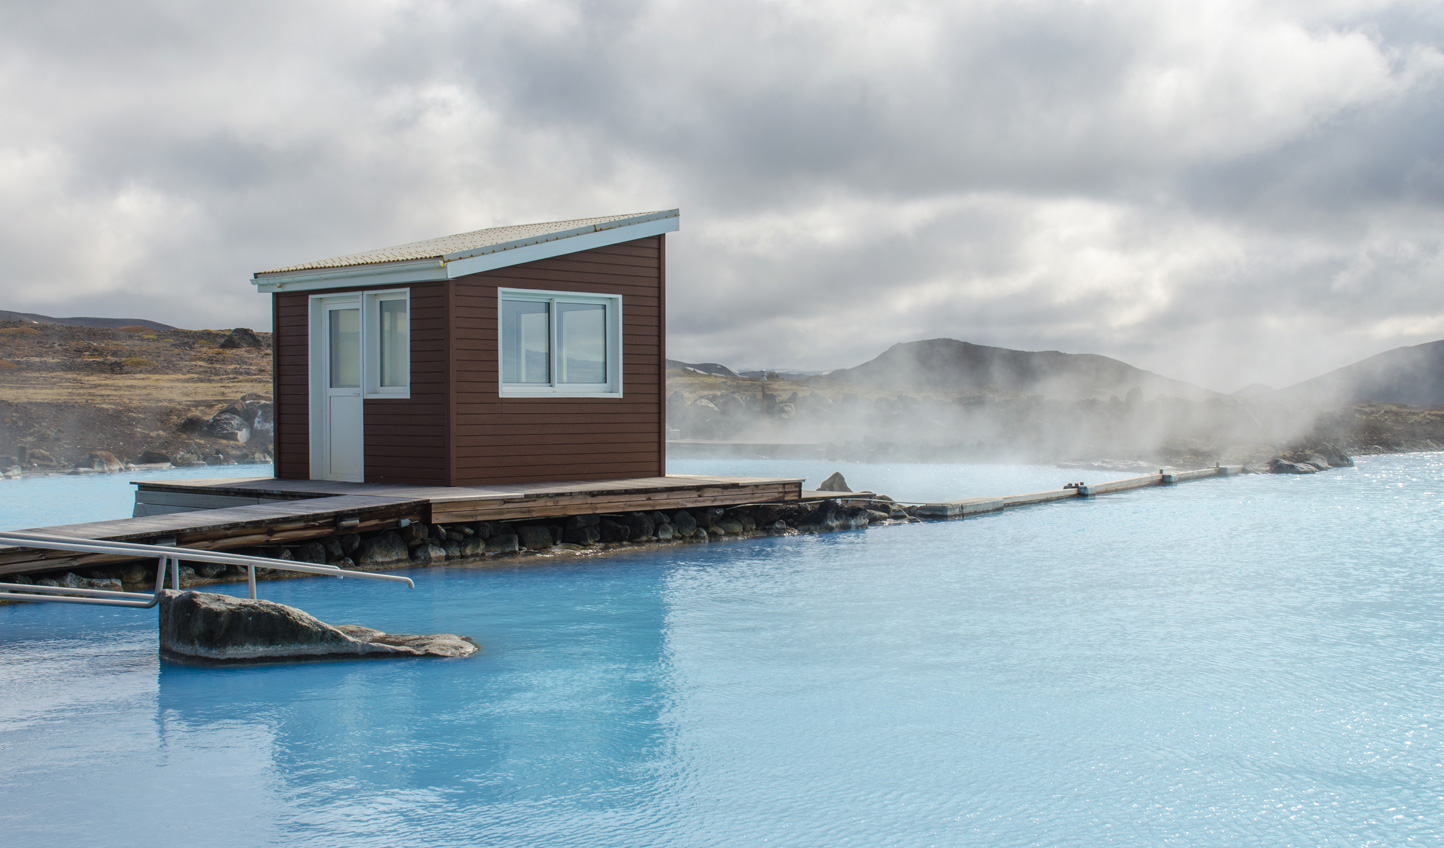 Spend the afternoon soaking in your surroundings at the Myvatn Nature Baths